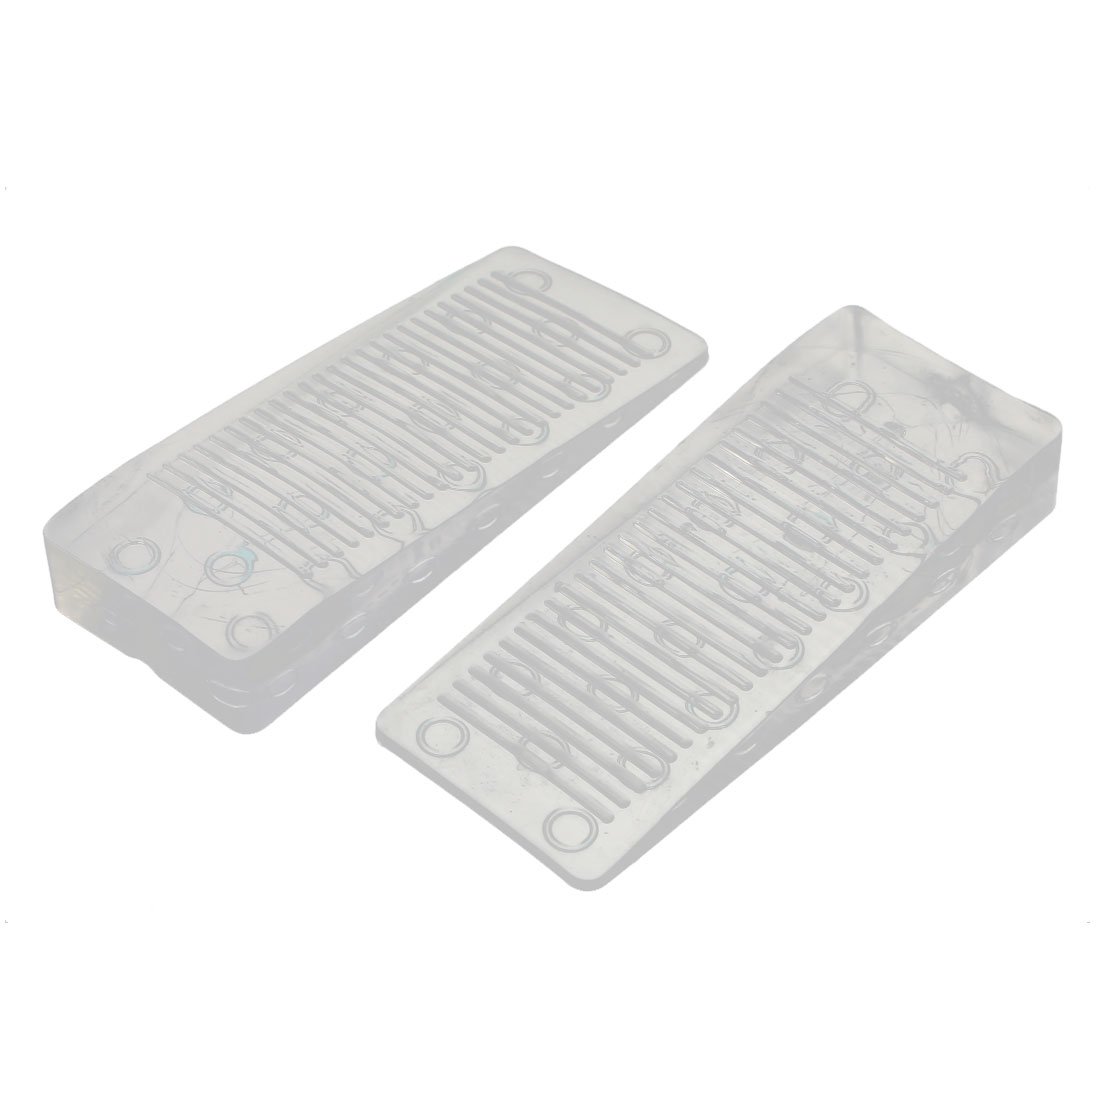 Home Office Clear Rubber Door Wedge Stopper Block 98x40x15mm 2pcs